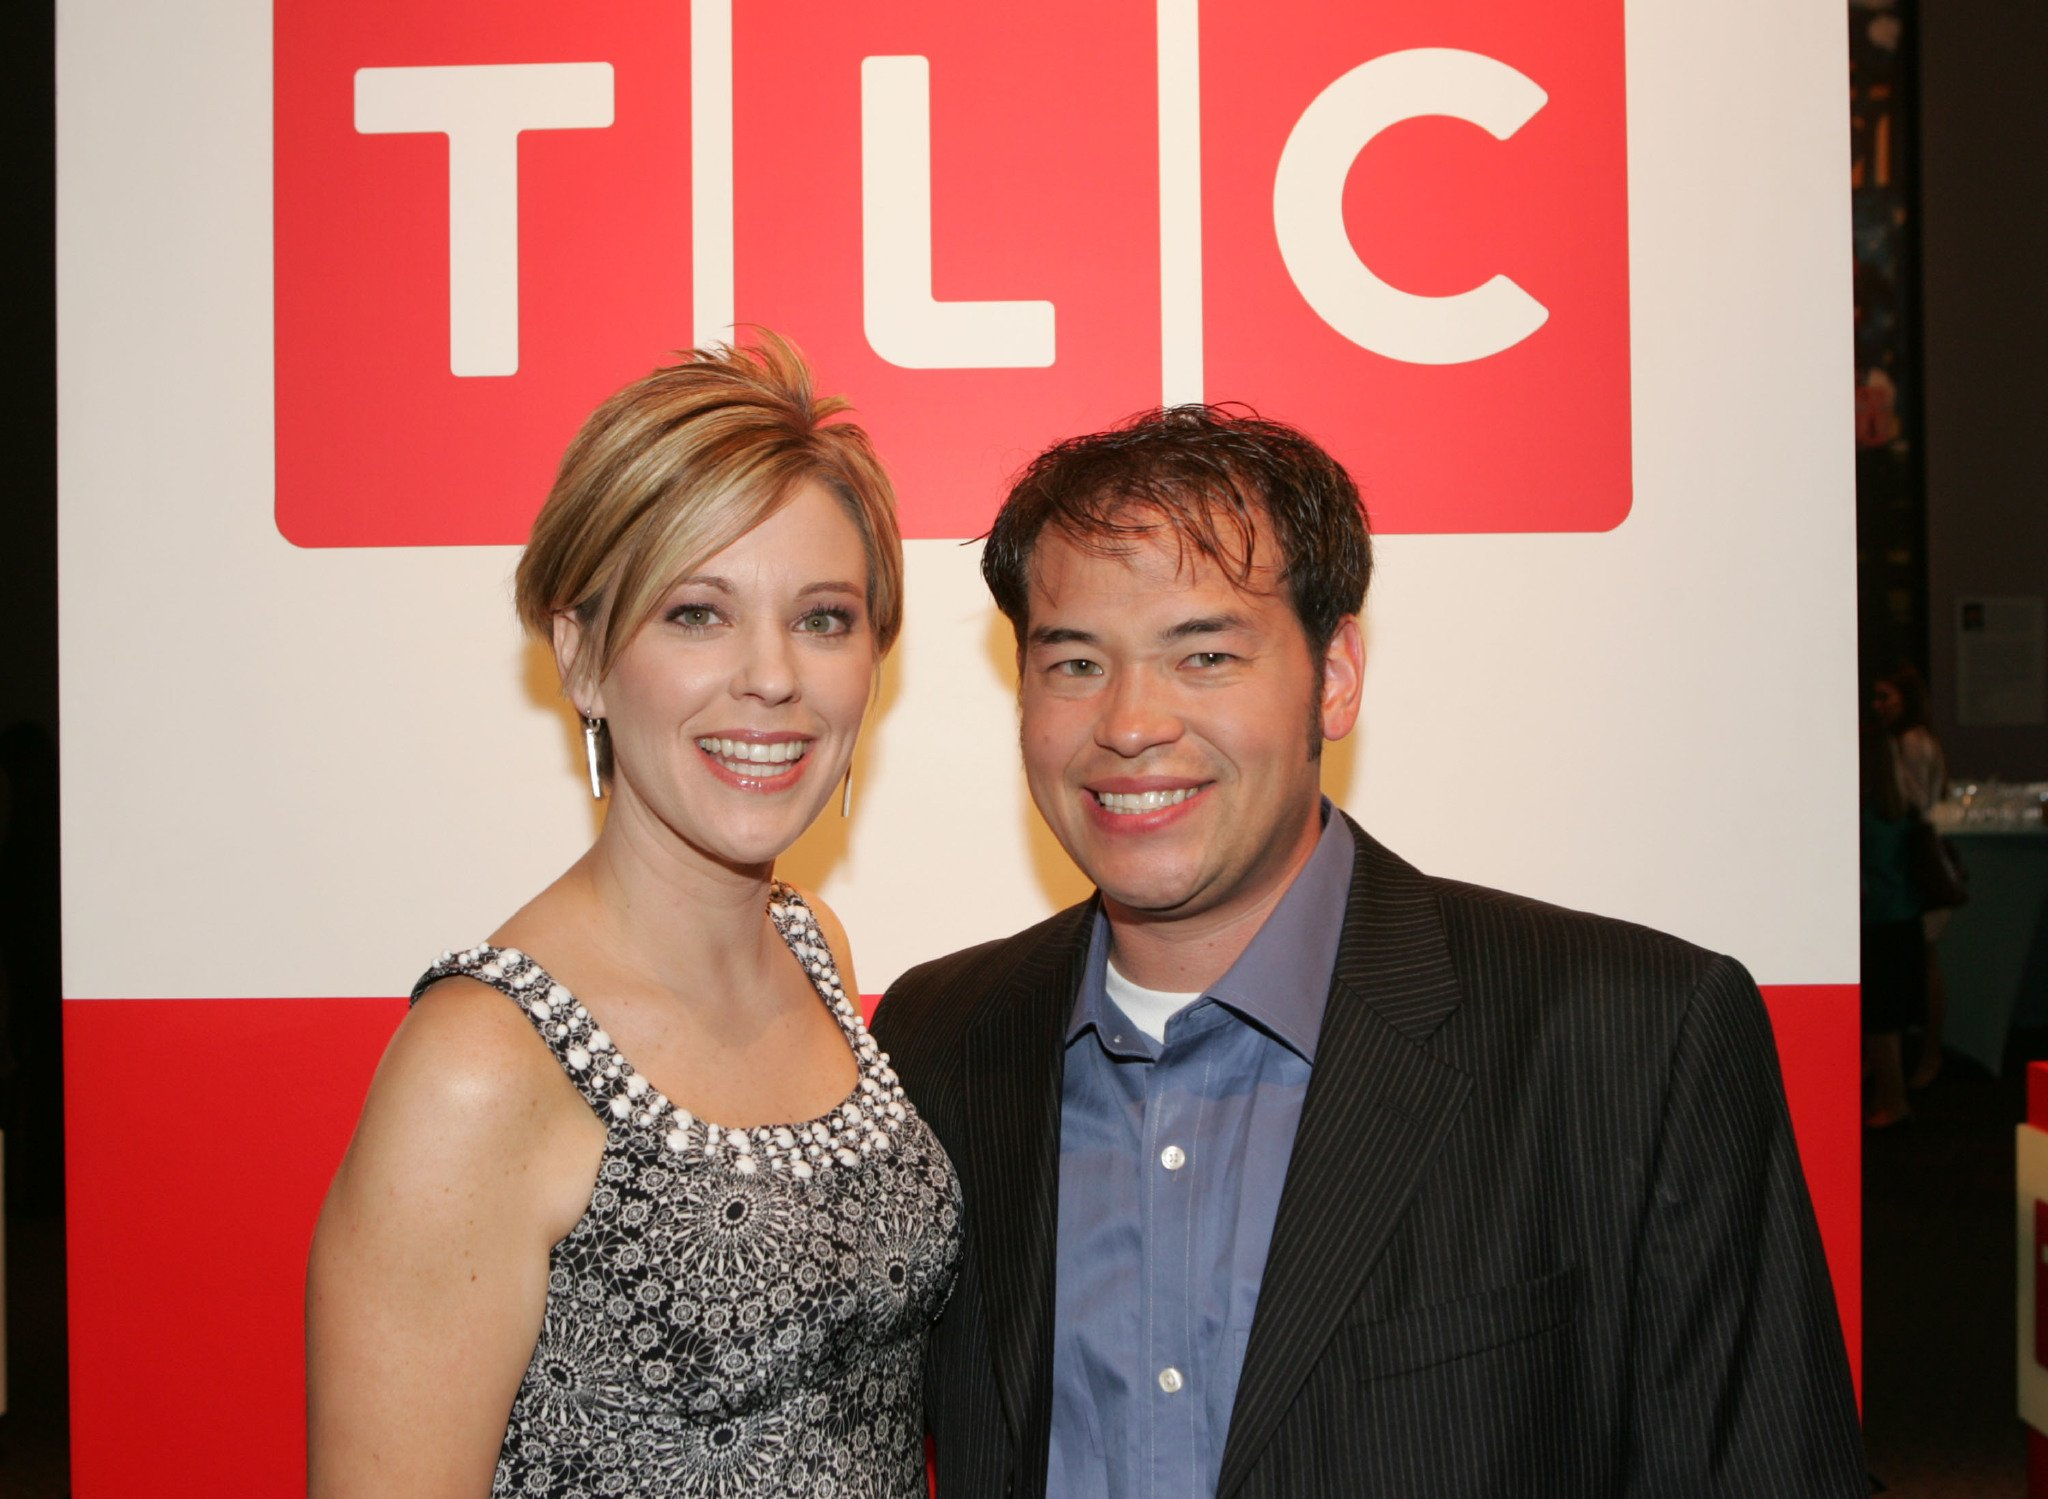 Television personalities John and Kate Gosselin attend the Discovery Upfront Presentation NY - Talent Images at the Frederick P. Rose Hall on April 23, 2008 | Photo: Getty Images